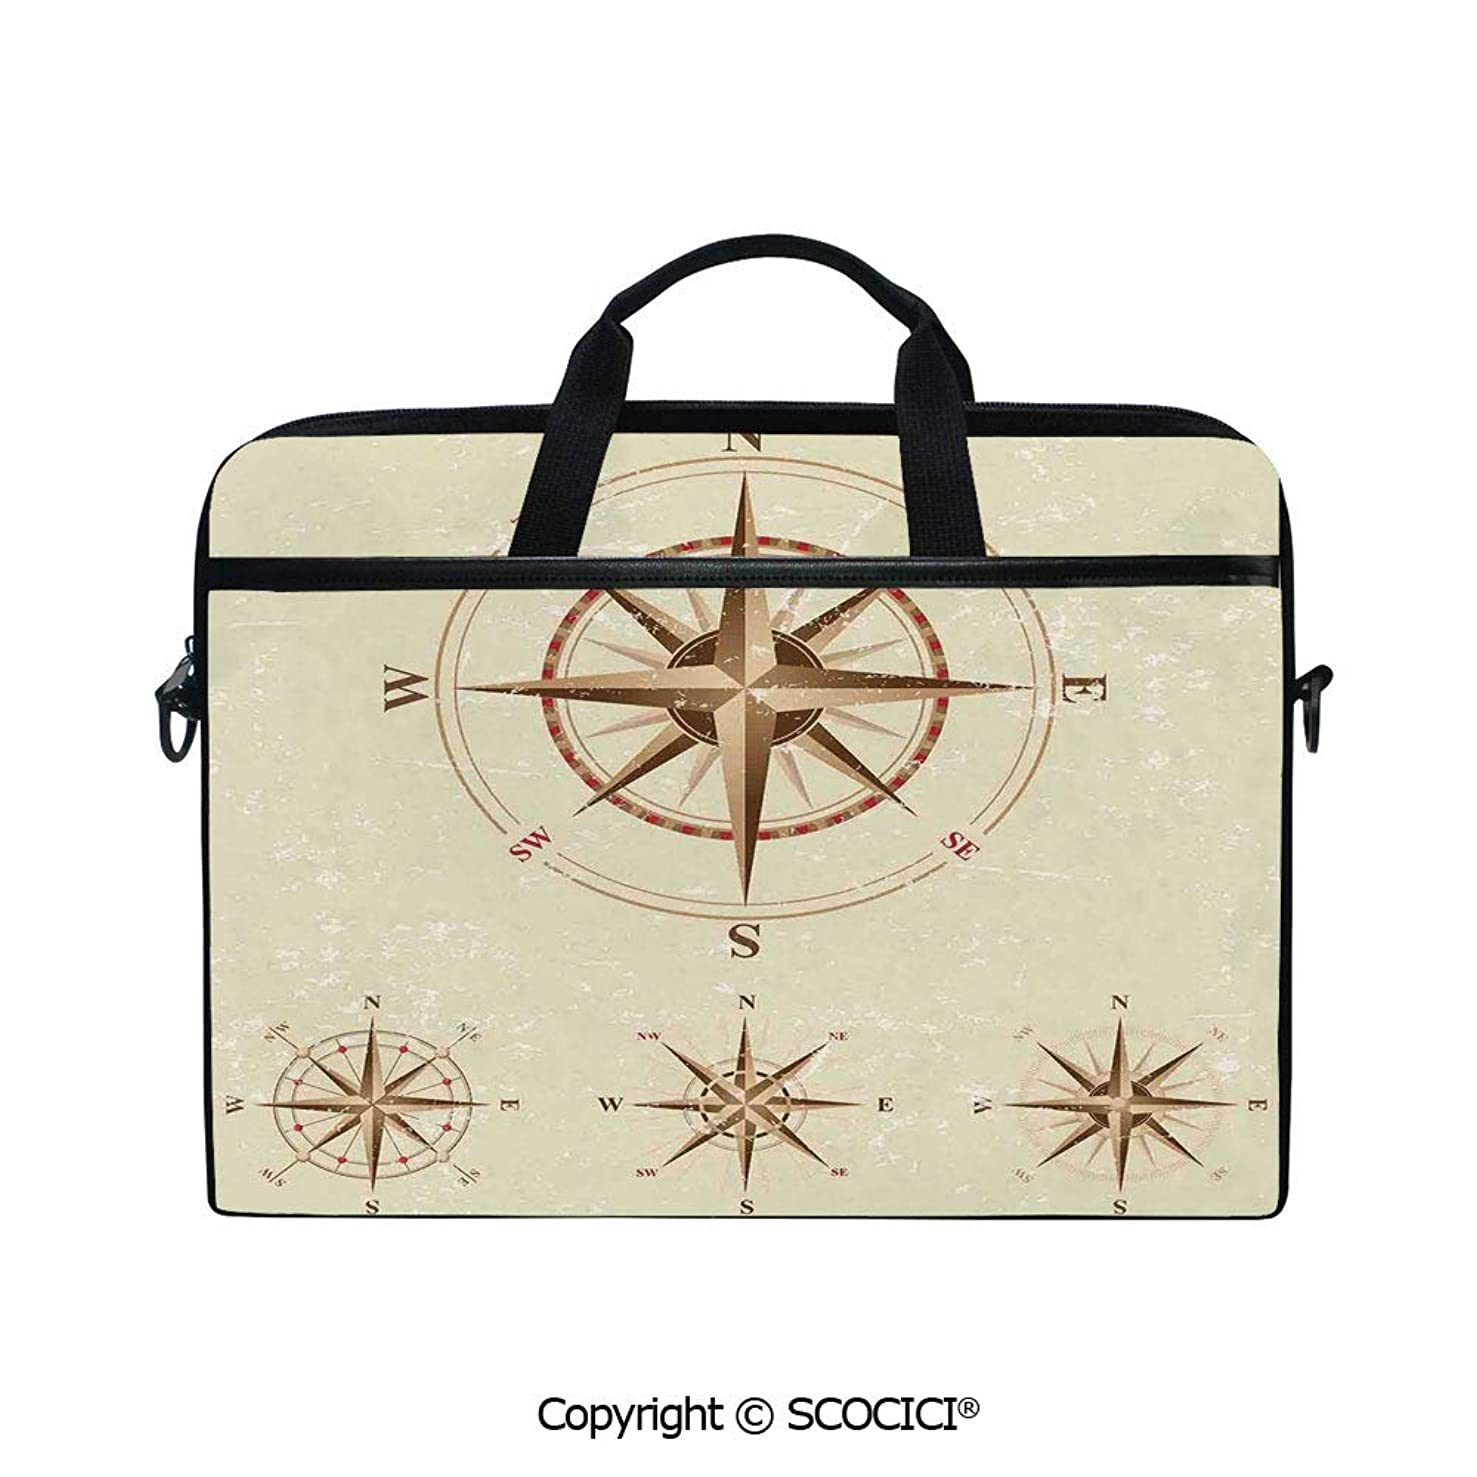 Durable Waterproof Printed Laptop Shoulderr Bag Four Different Compasses in Retro Colors Discovery Equipment Where Marine Computer Briefcases for 15 inch